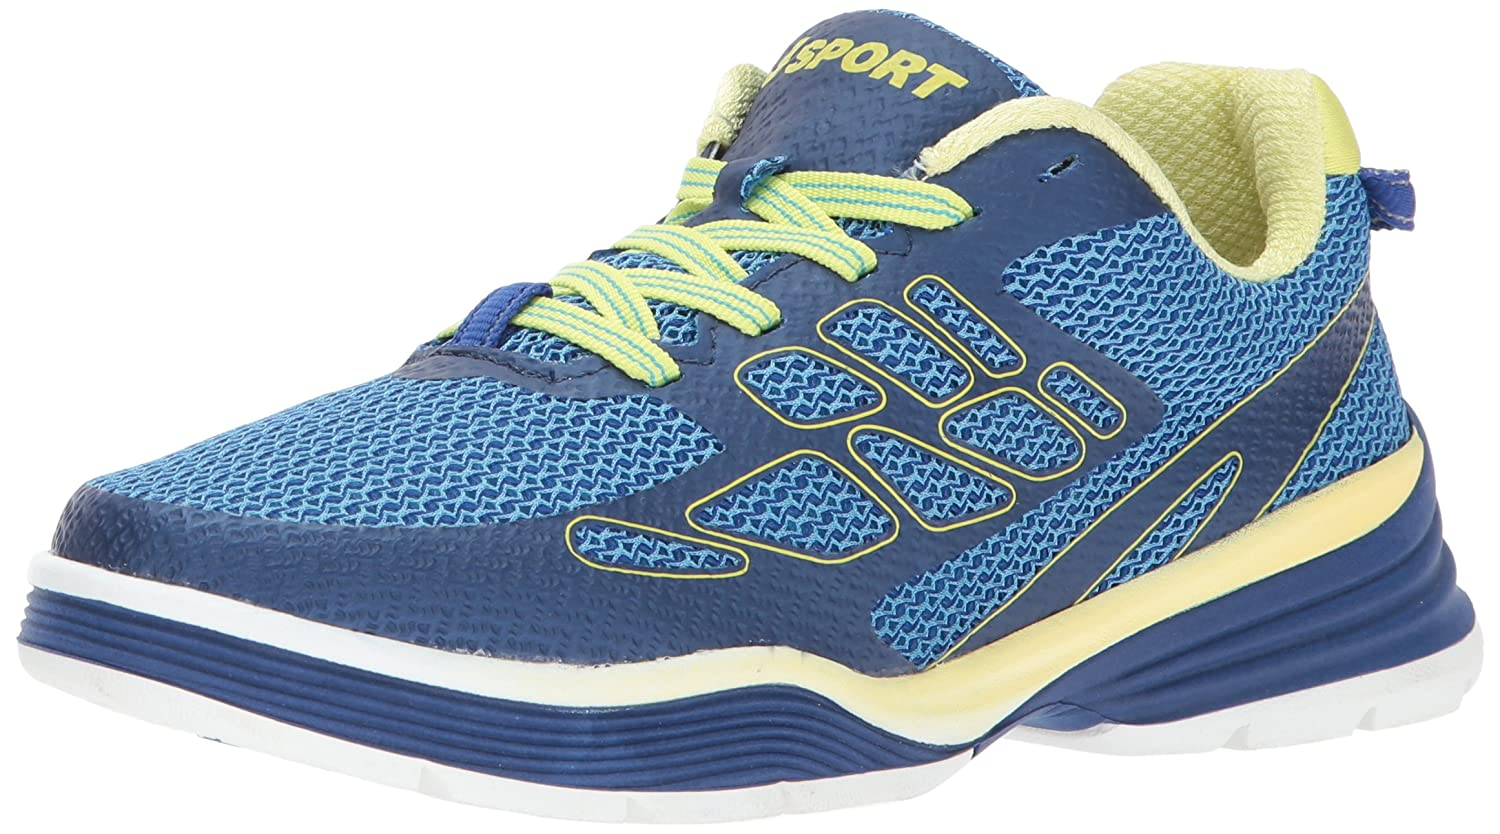 JSport by Jambu Women's Sport Walker Fashion Sneaker B07194Z2T1 11 B(M) US|Deep Blue/Neon Yellow